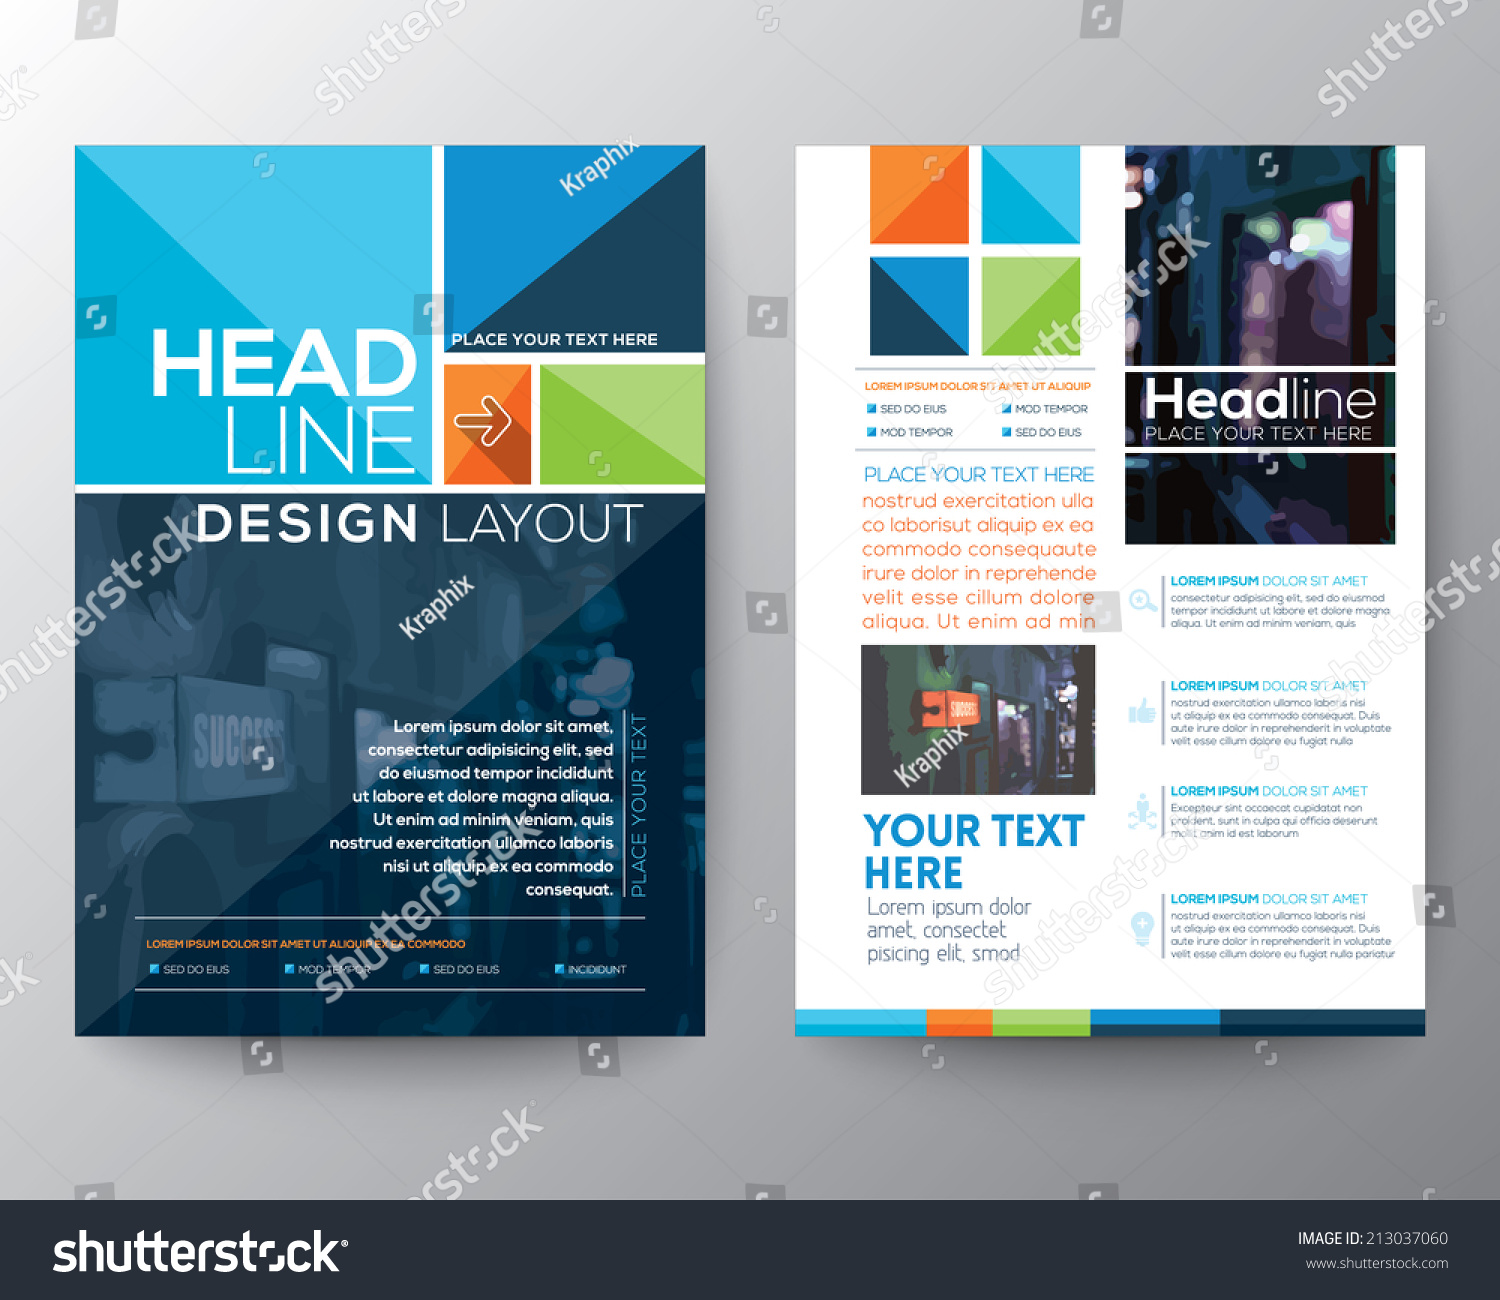 Flyer Layout Template. flyer backgrounds lizenzfreie bilder und ...